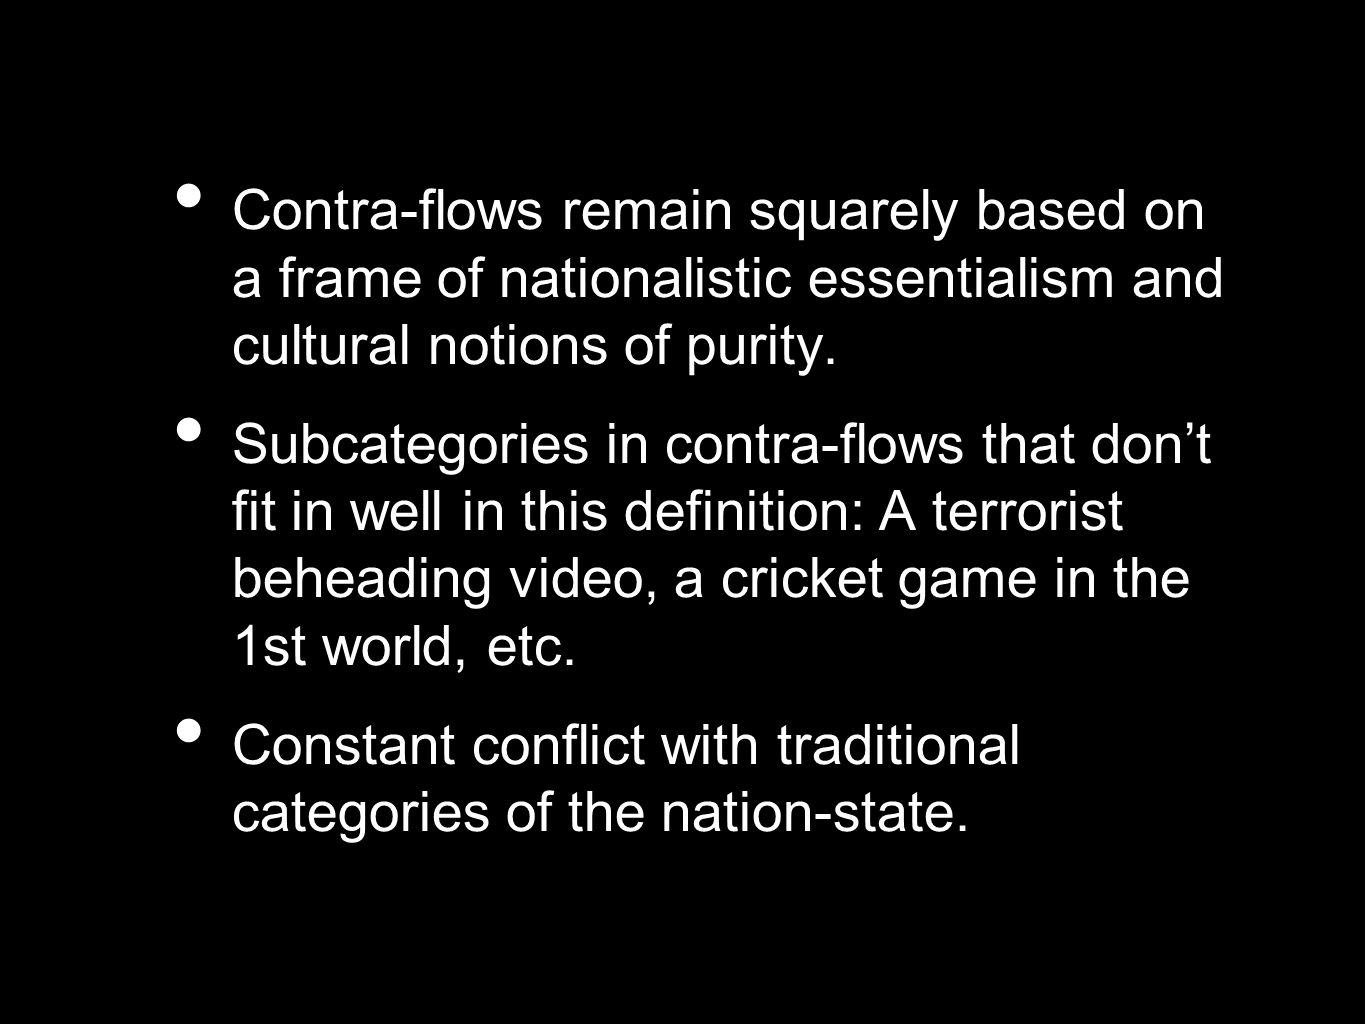 Contra-flows remain squarely based on a frame of nationalistic essentialism and cultural notions of purity.